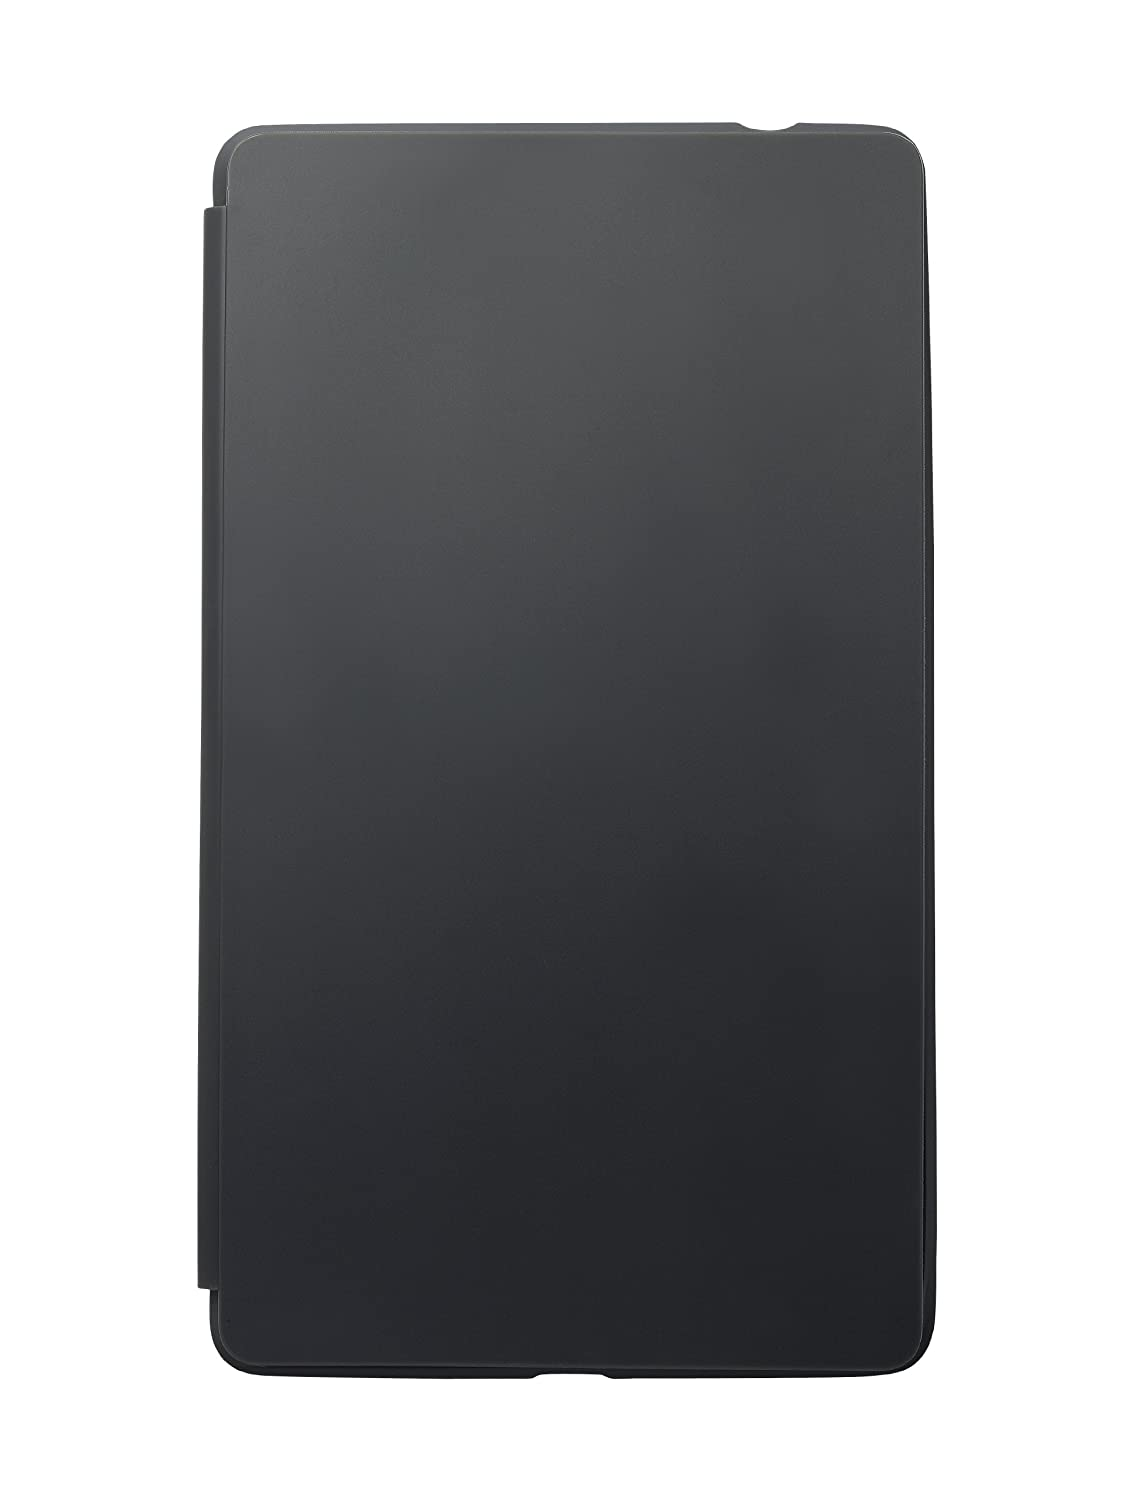 Price available in white or black for about 2399 for all four - Asus New Nexus 7 Fhd Official Travel Cover Dark Grey